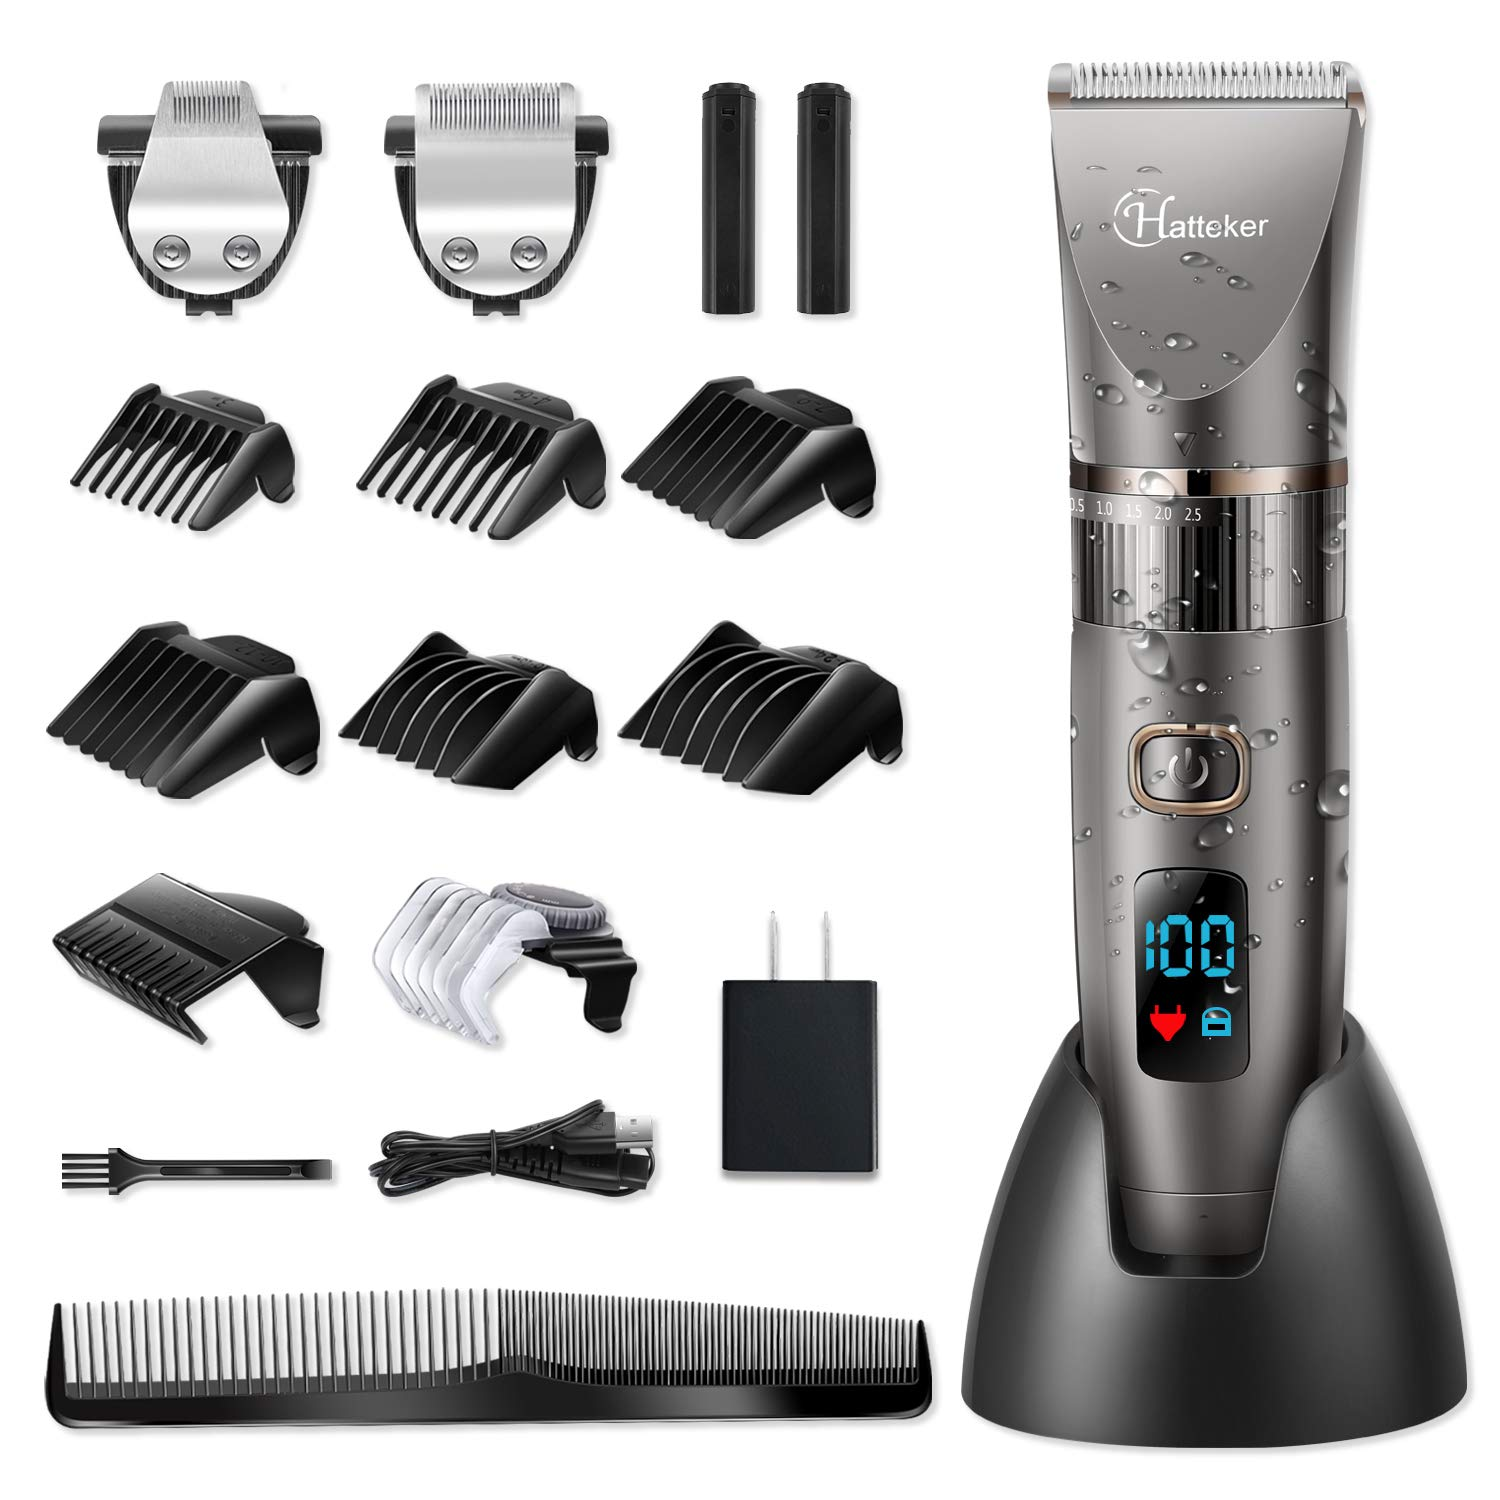 Hatteker Mens Beard Trimmer Cordless Hair Trimmer Hair Clipper Detail Trimme for Men Hair Cutting Kit Men's Grooming Kit Waterproof